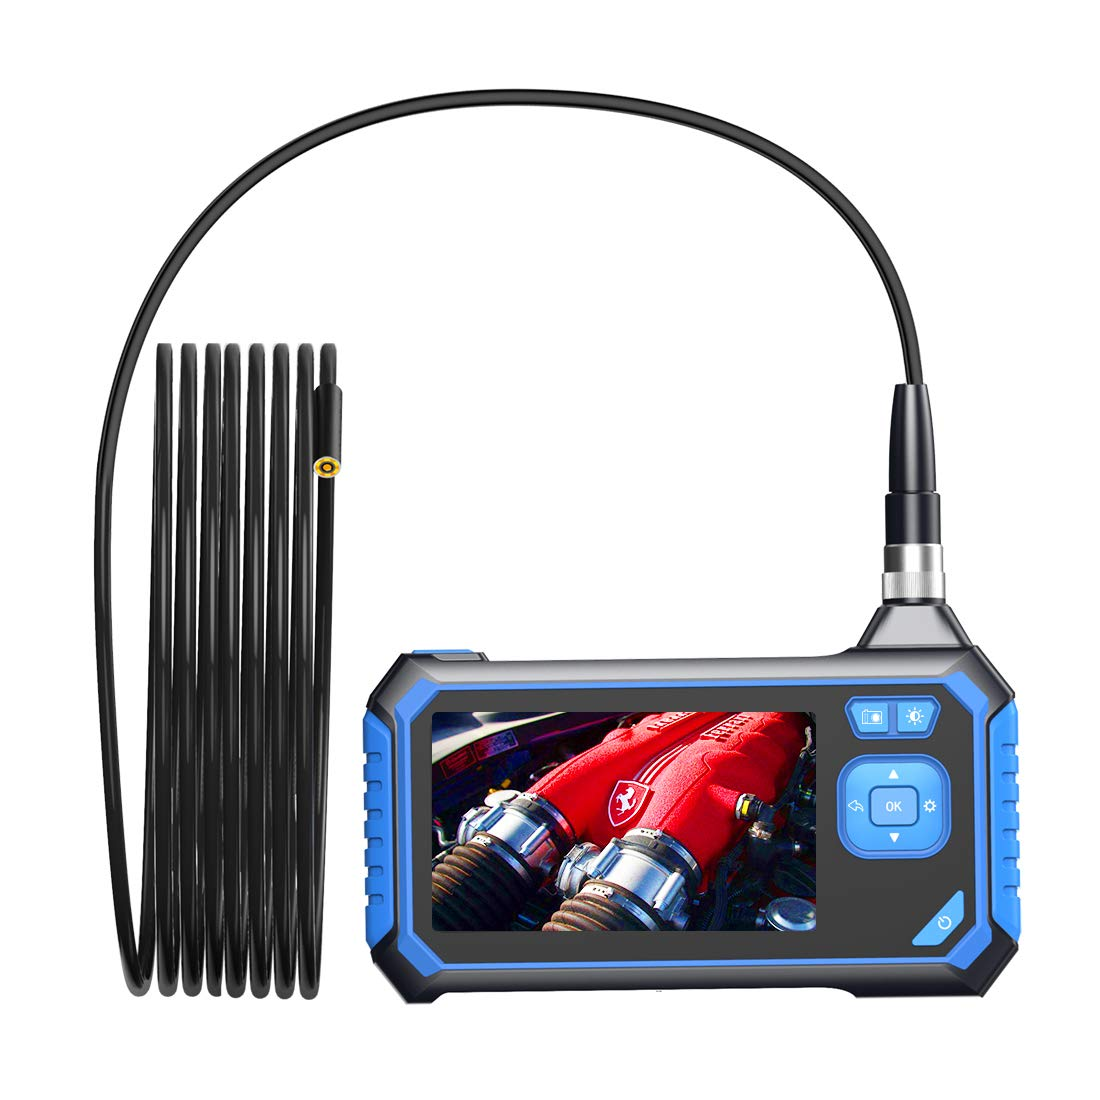 8GB SD Card(16.5FT) Industrial Endoscope,SKYBASIC Digital Borescope 4.3 Inch LCD 1.6-198inch Focal Distance Snake Camera 1080P HD 2600mAh Video Inspection Camera